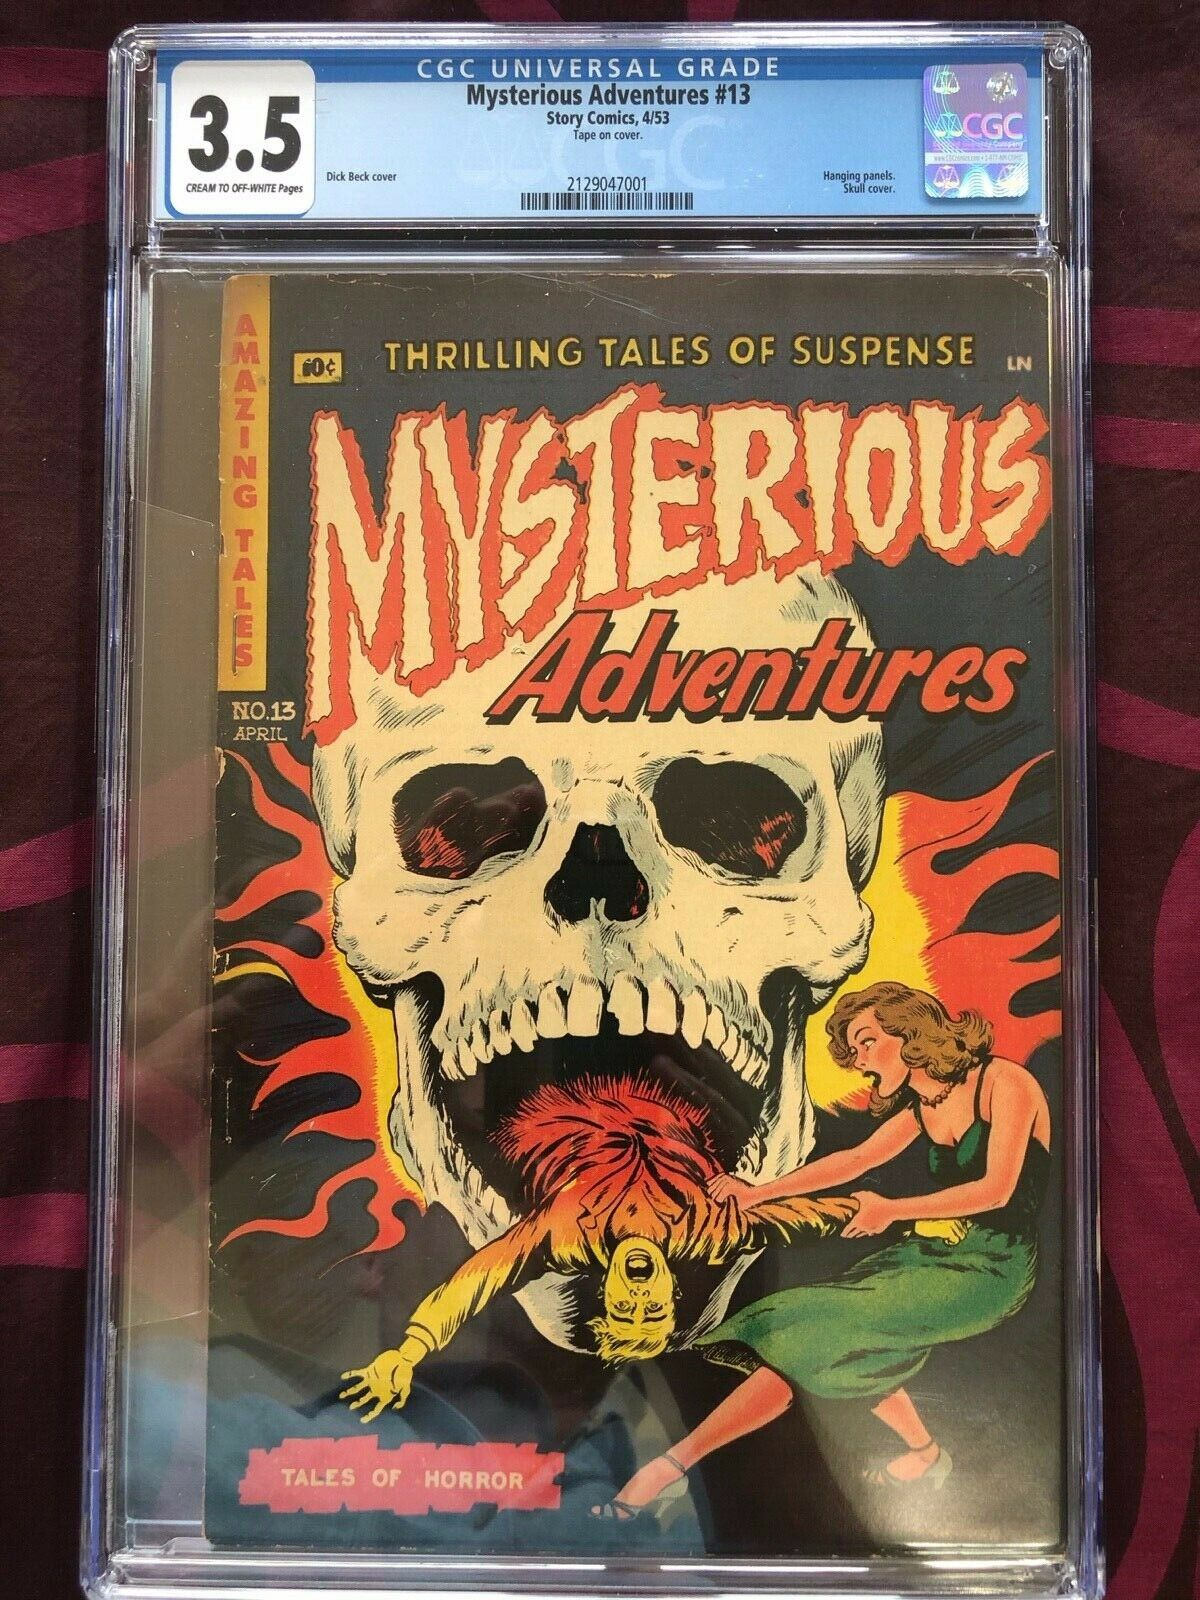 Mysterious Adventures Story 13 453  CGC Graded 35 Classic Skull Cover